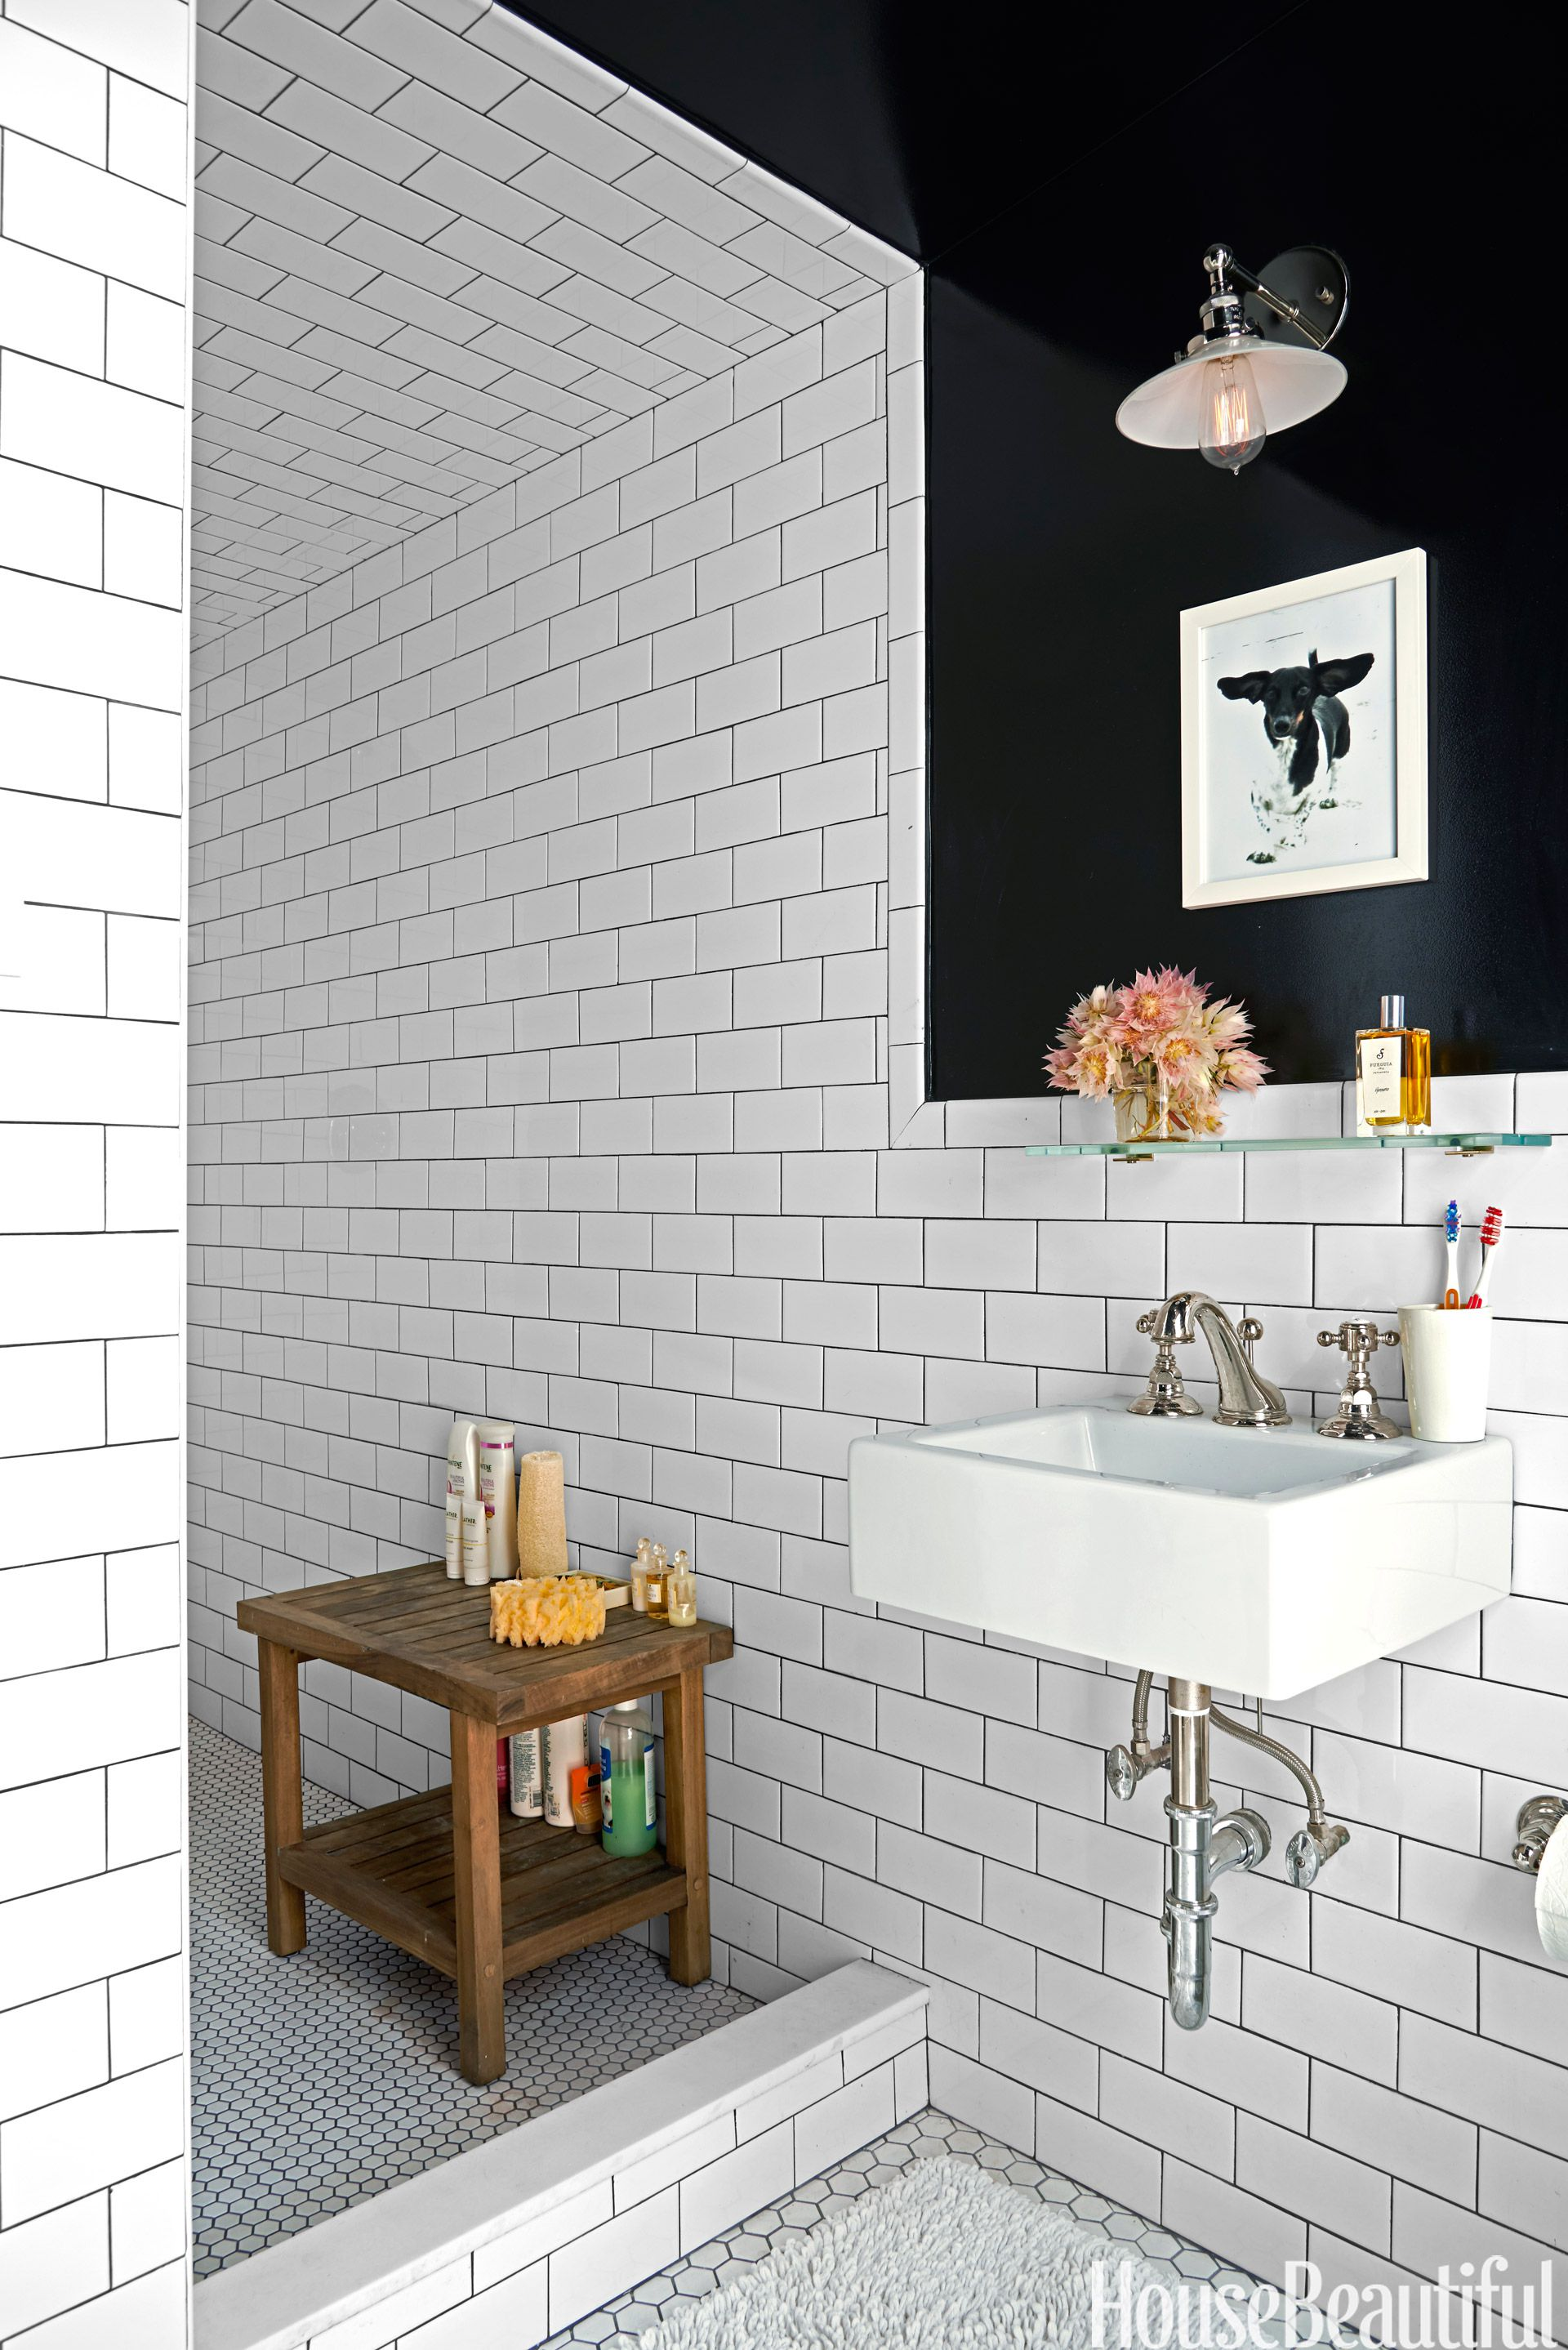 10 Best Subway Tile Bathroom Designs in 2018 - Subway Tile Ideas For